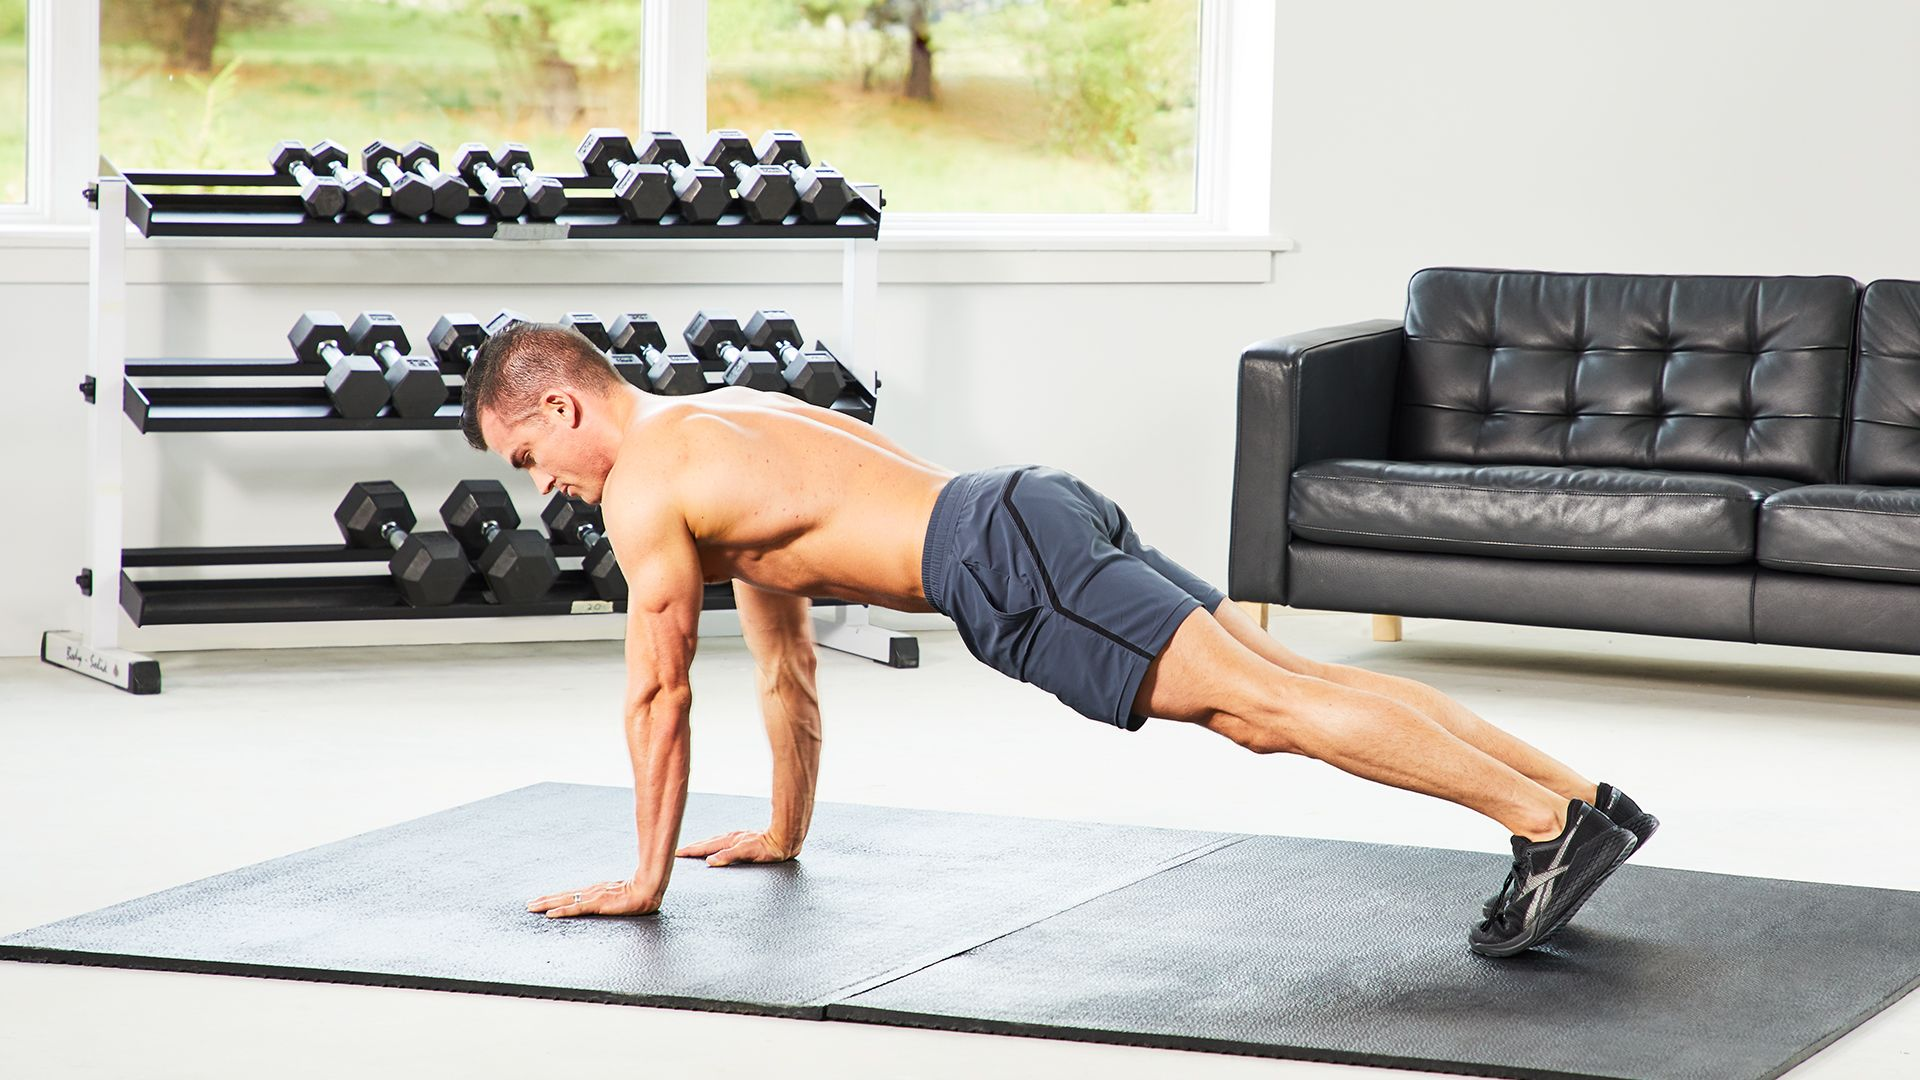 Take On This 7-Minute Bodyweight Blast Home Workout